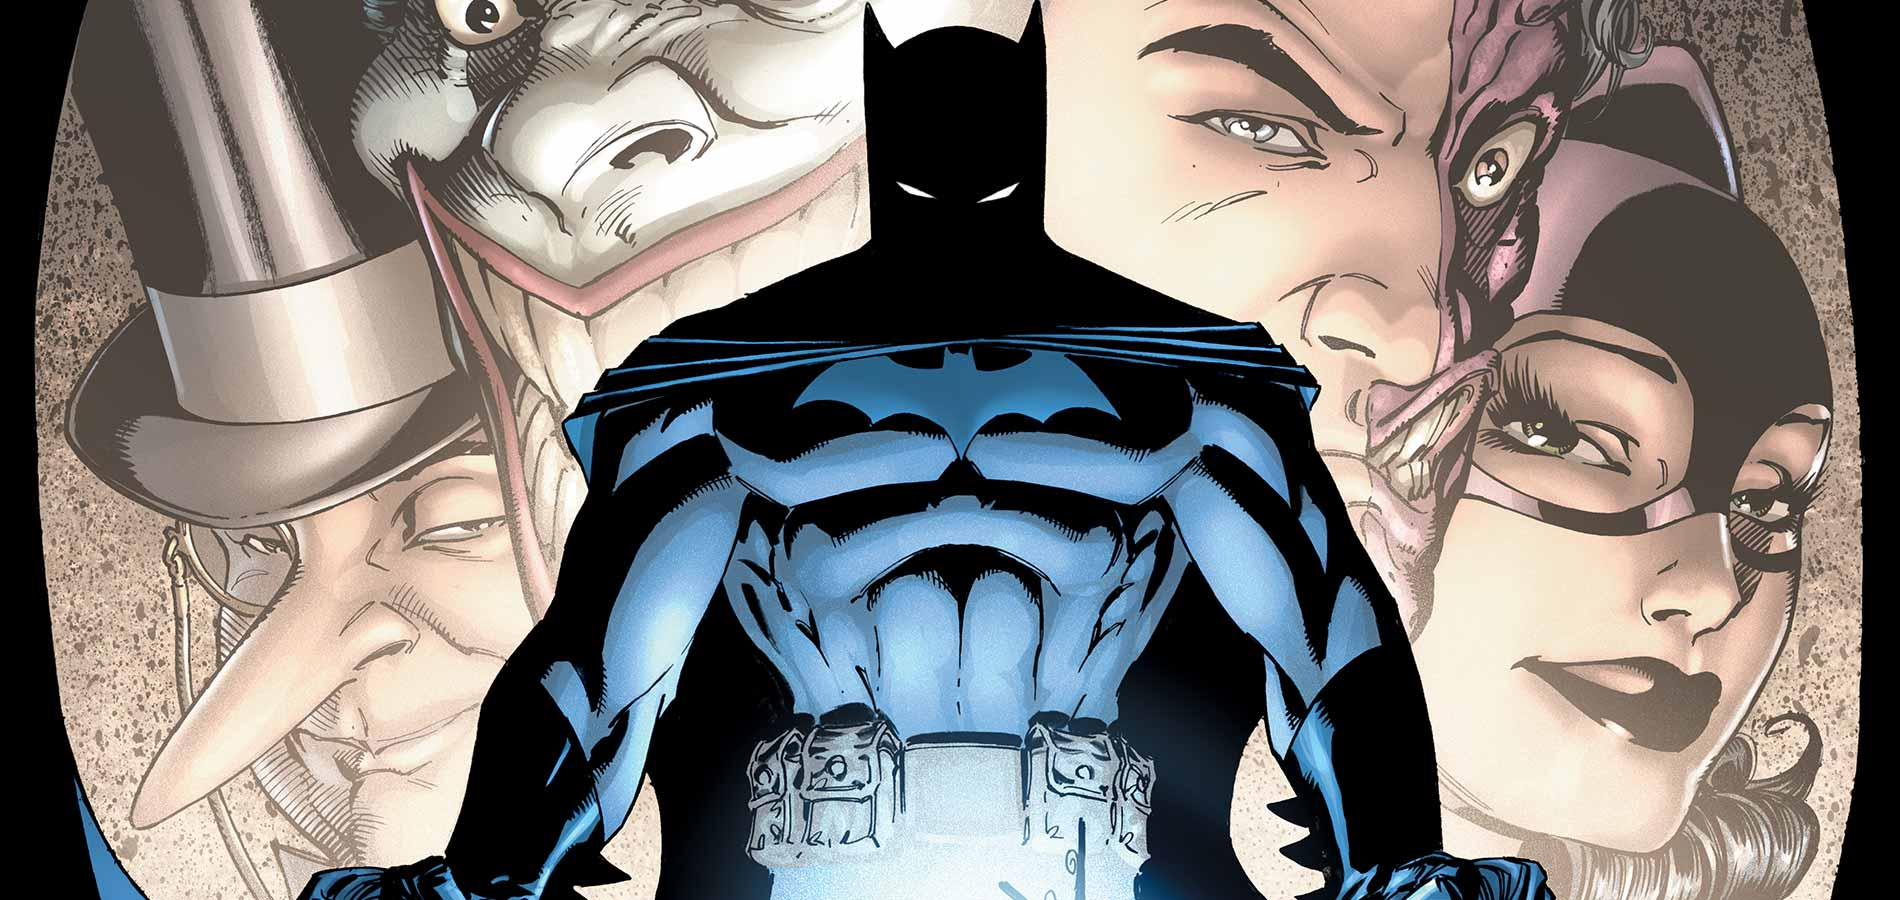 WHATEVER HAPPENED TO THE CAPED CRUSADER